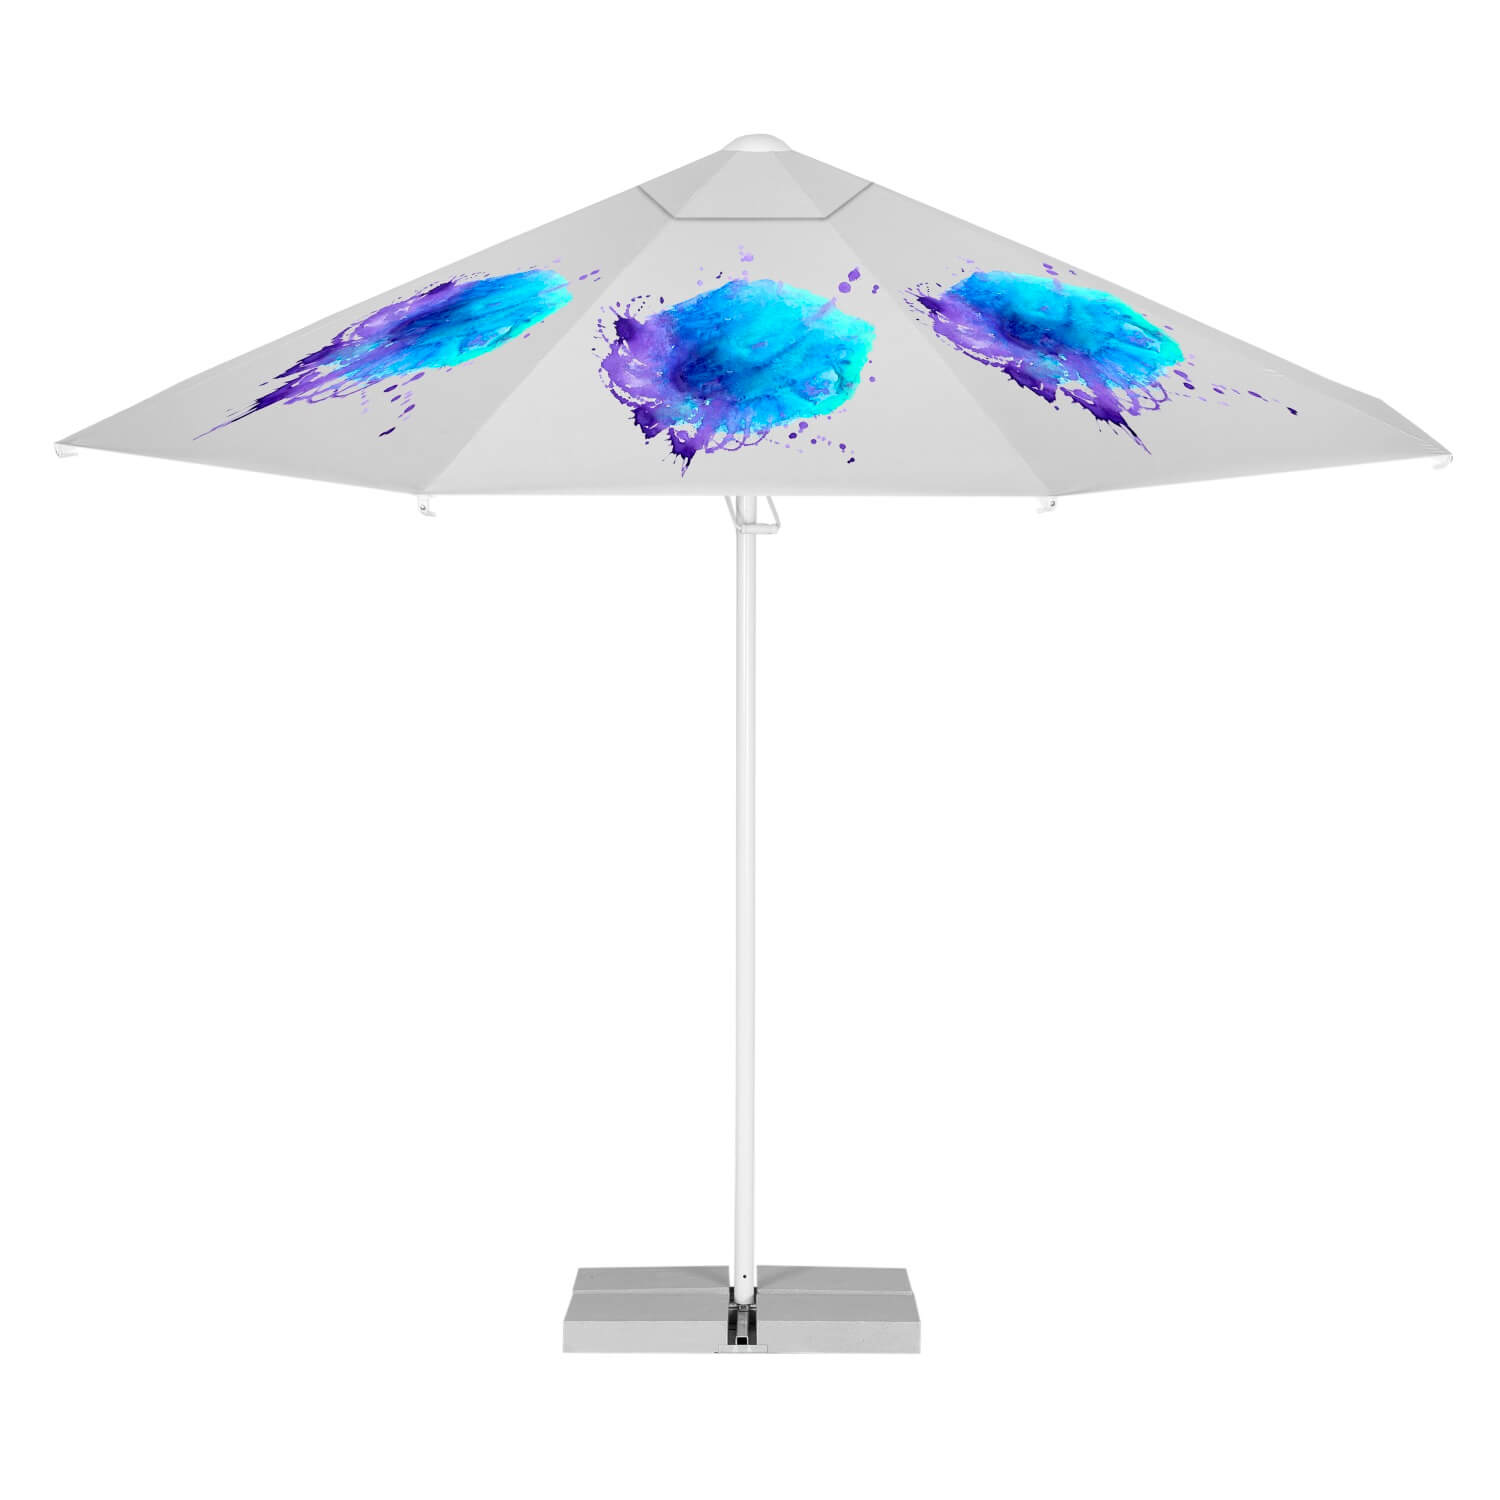 2. Easy up parasol